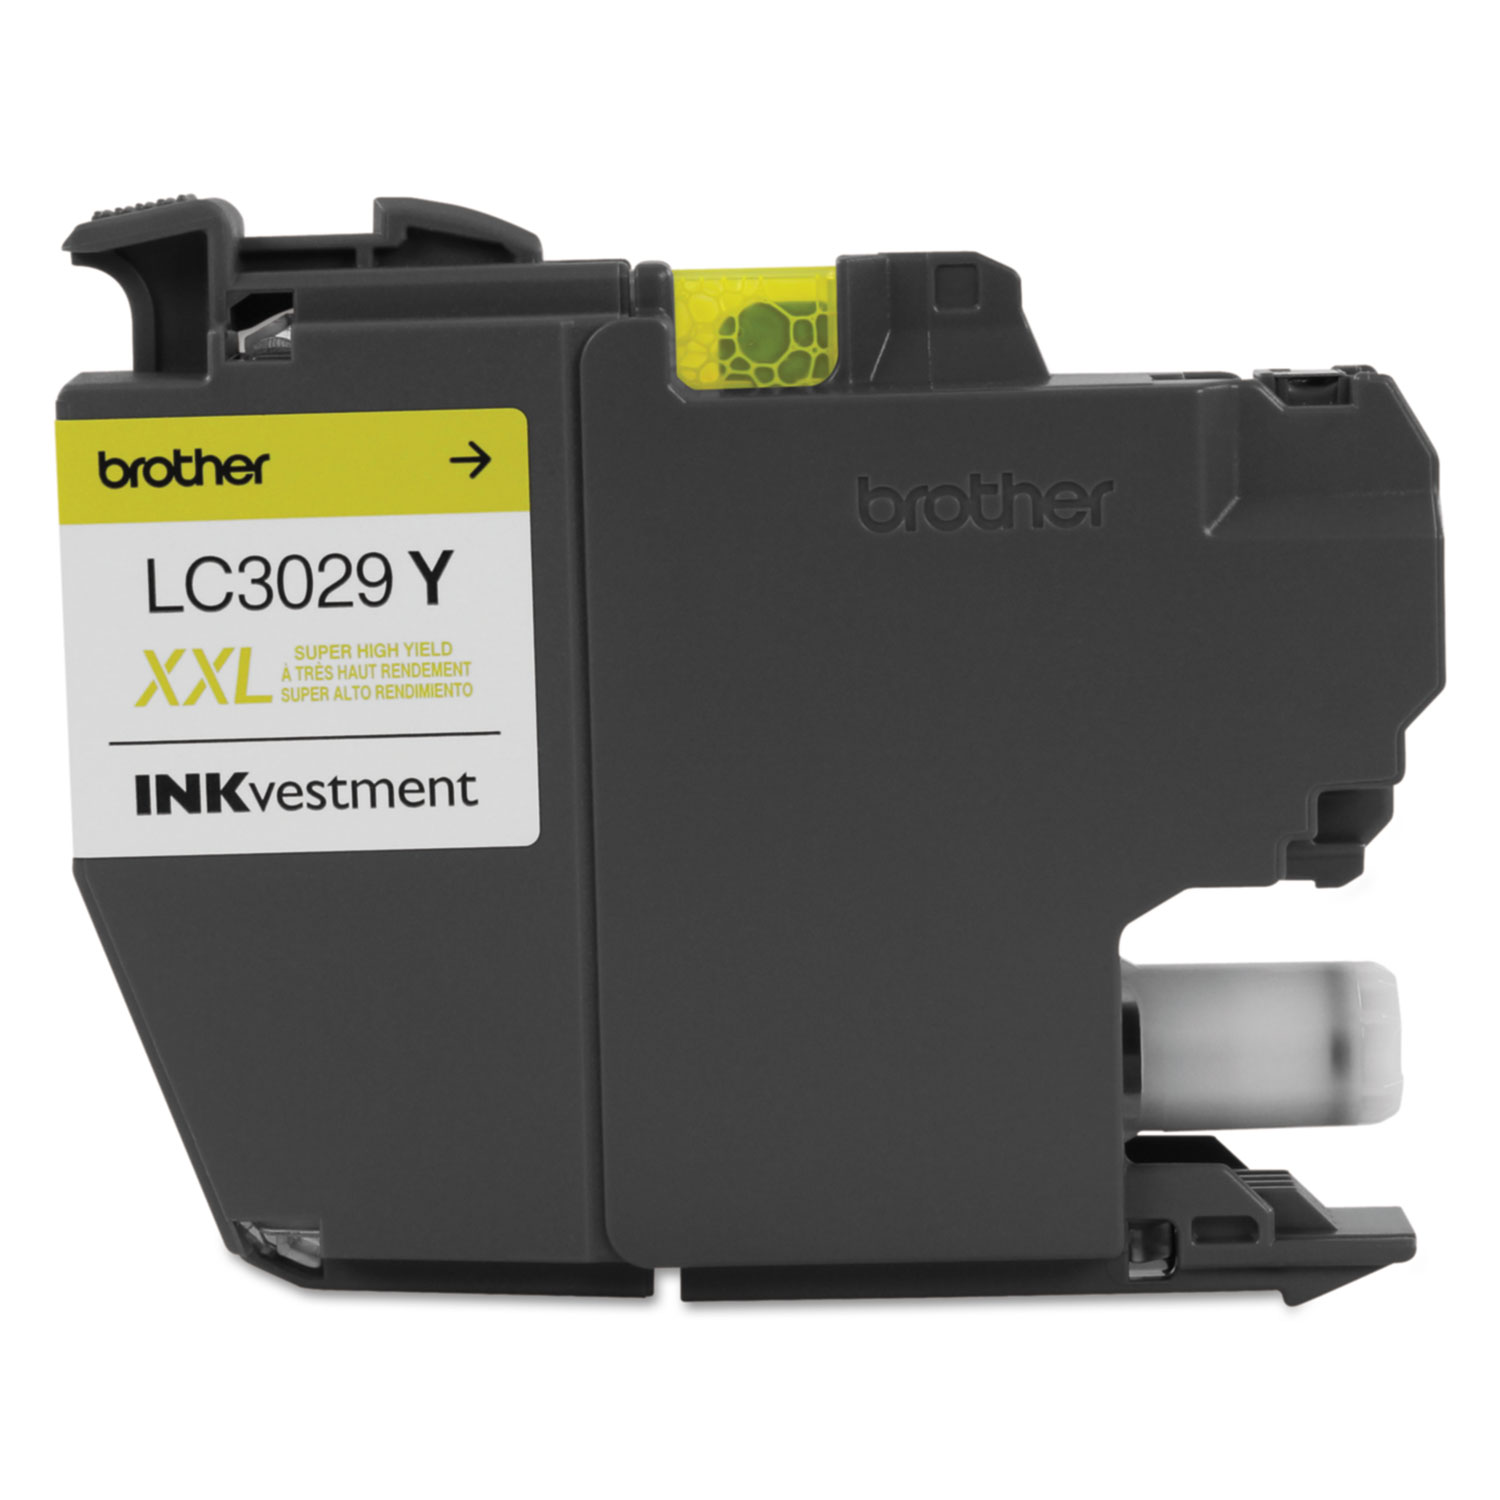 LC3029Y INKvestment Super High-Yield Ink, 1500 Page-Yield, Yellow